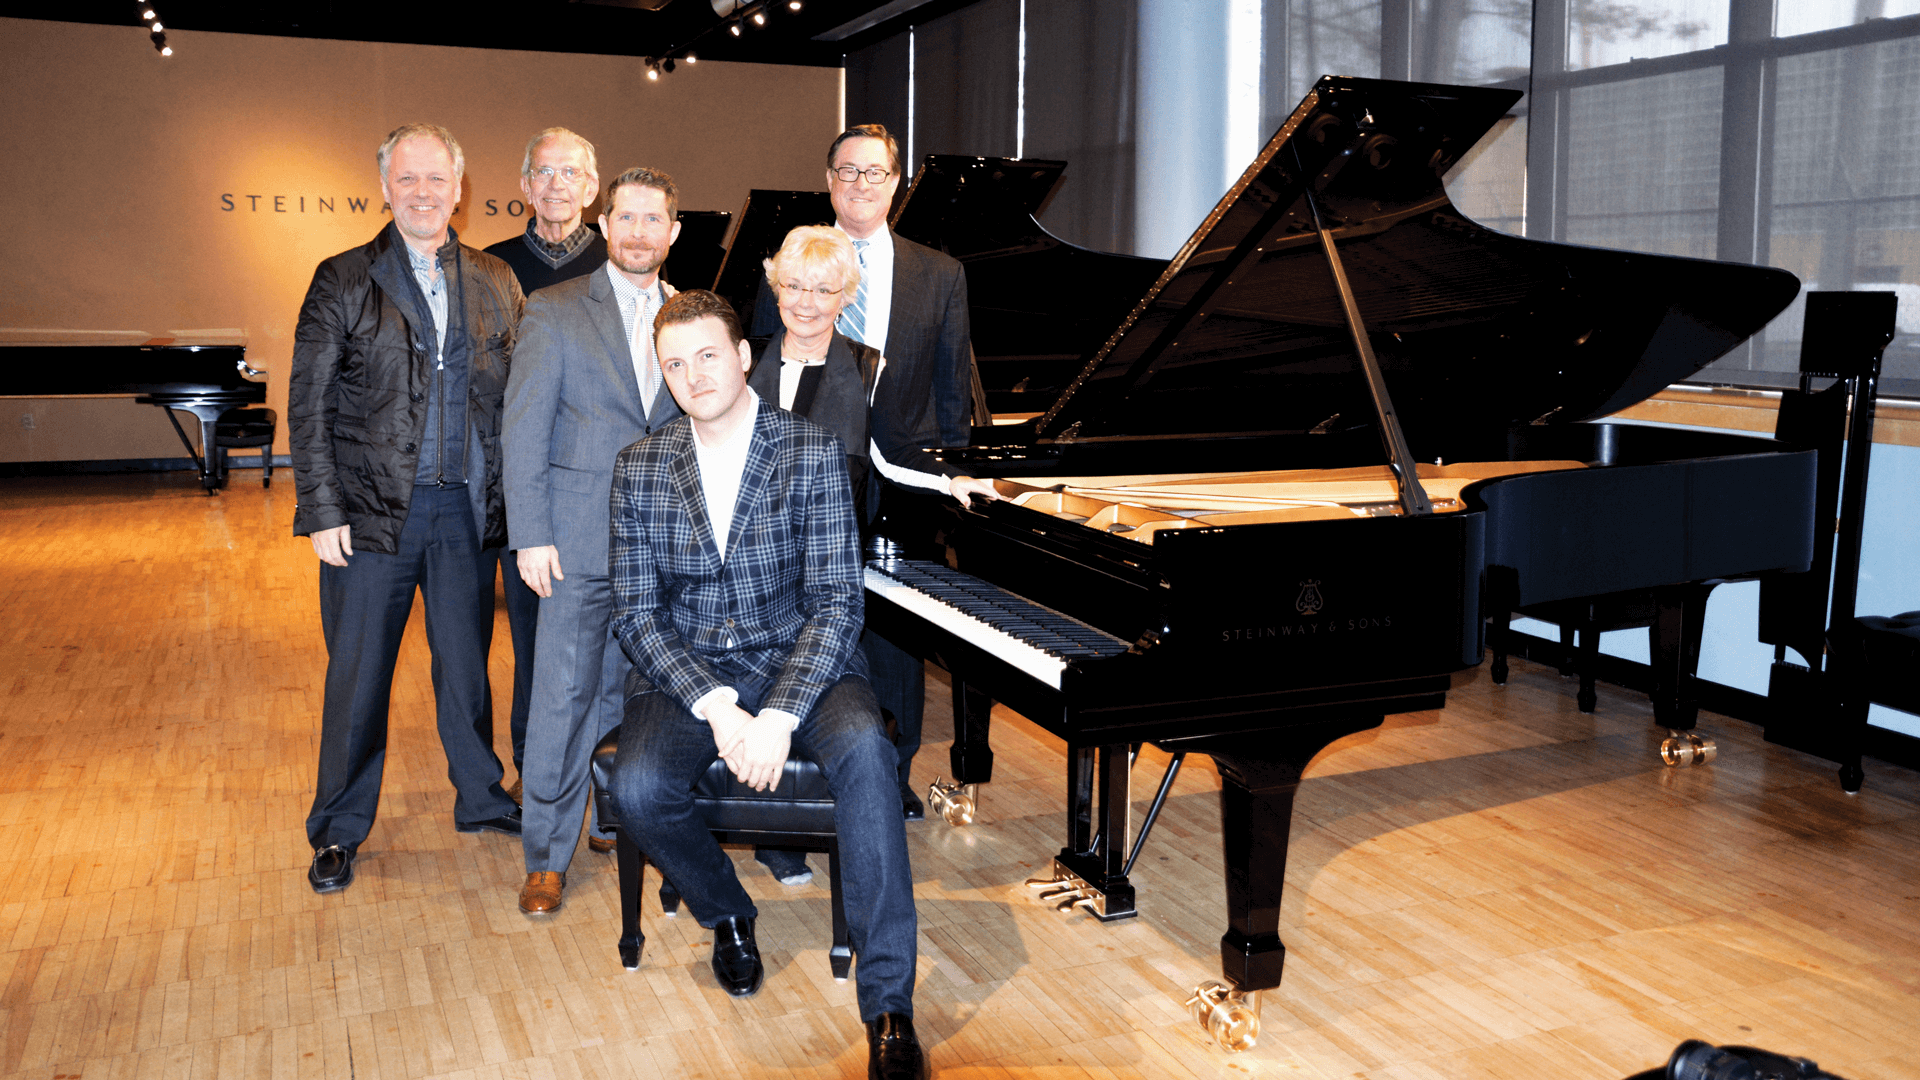 Purdue Steinway Selection Group included Joel Harrison, John Nine, Todd Wetzel, Eric Zuber, Janet Nine, and Craig Gigax.